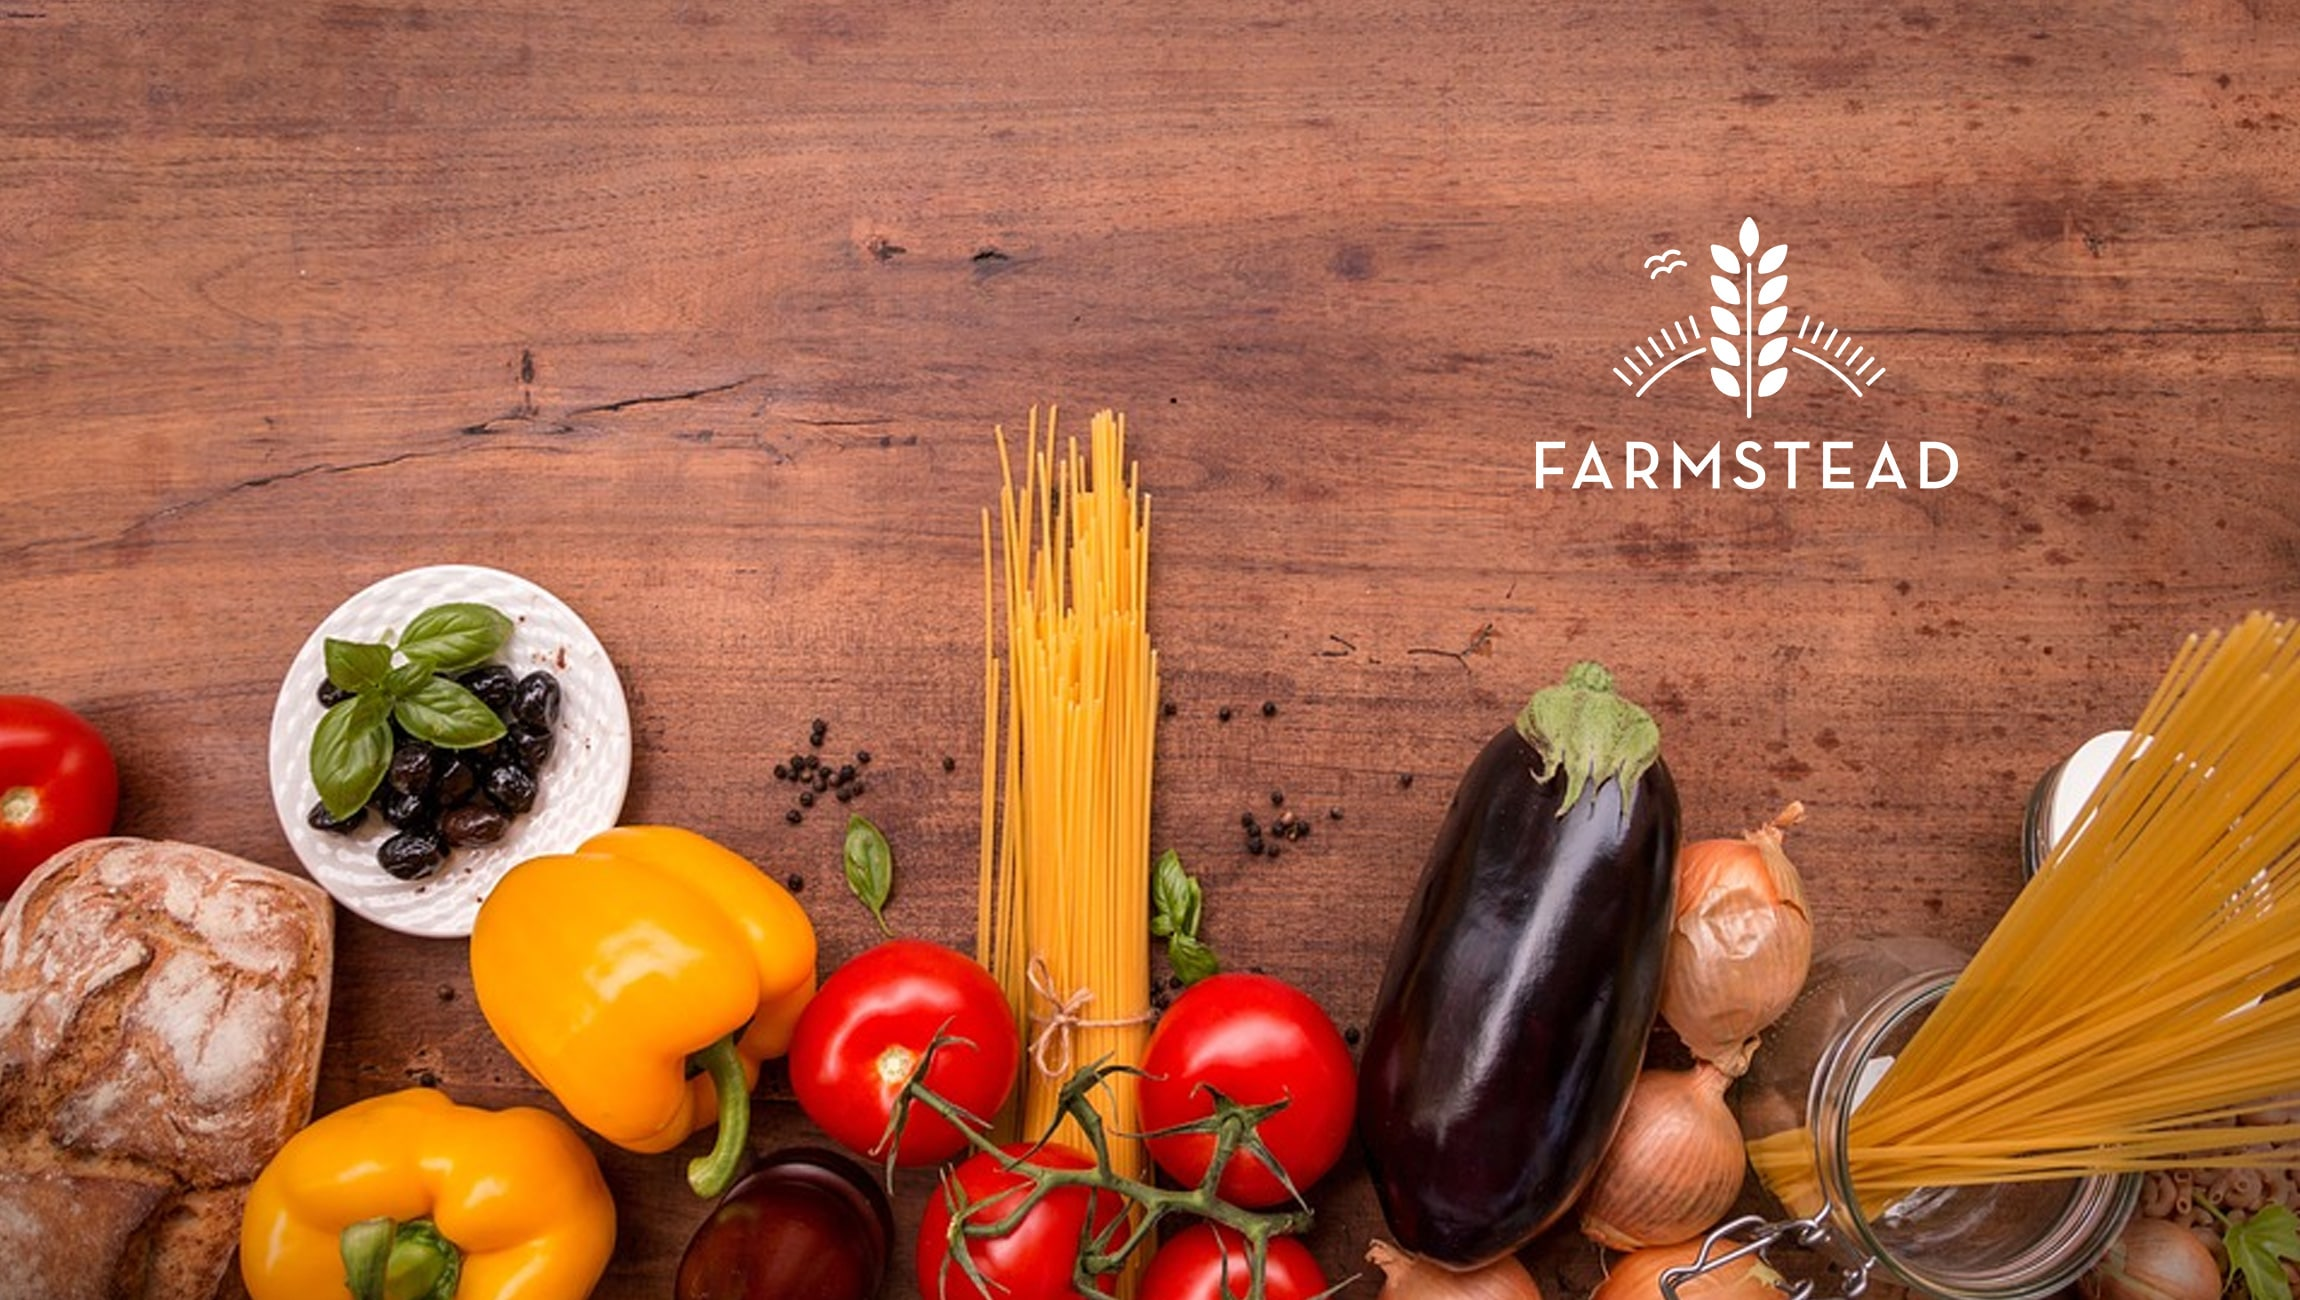 Farmstead comes with secured funding to grow its grocery eCommerce platform